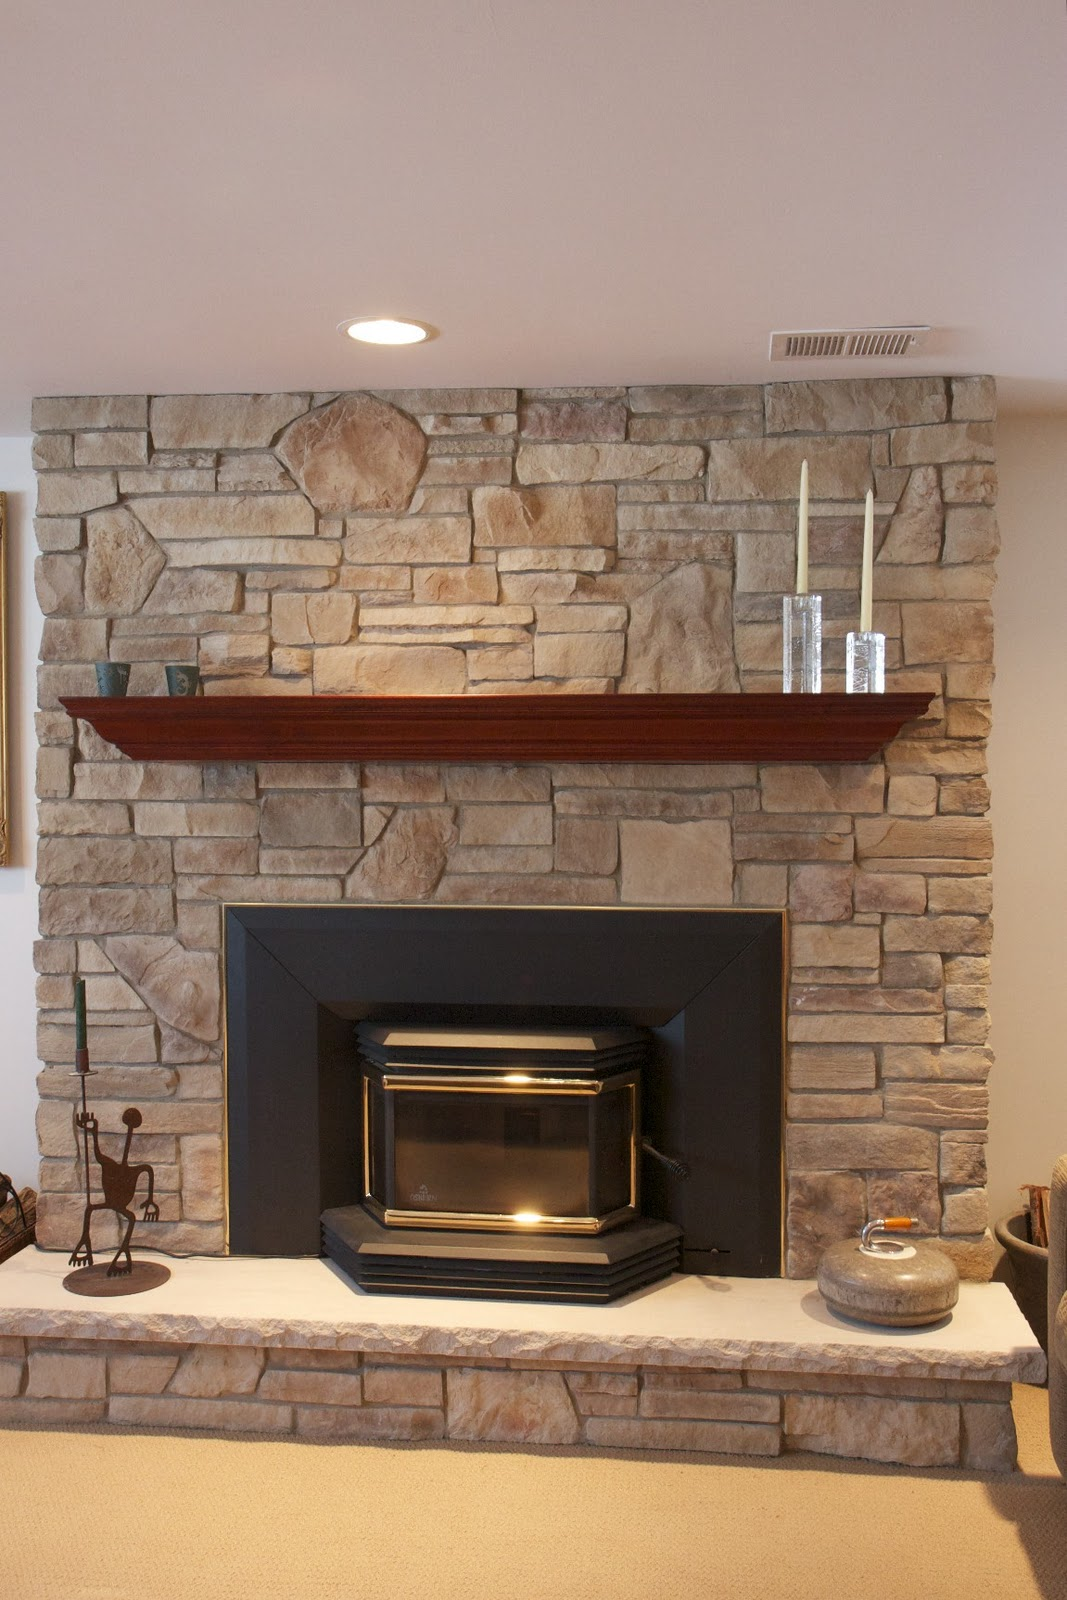 north star stone stone fireplaces stone exteriors stone fireplace